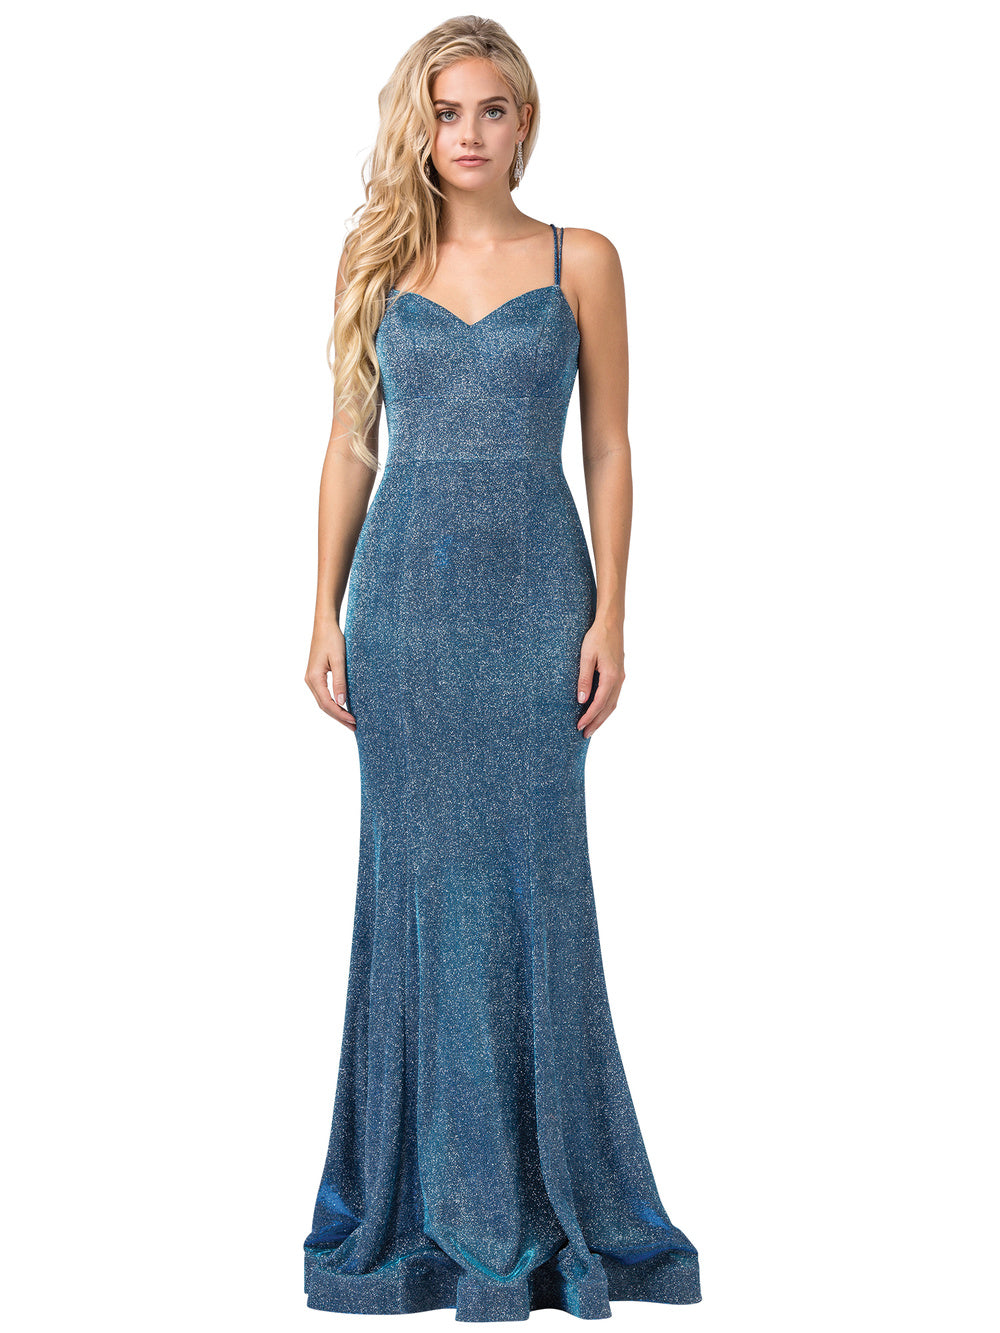 Harper Prom Gown Metallic Glitter Mermaid Prom Dress D-2698-OpalBlue